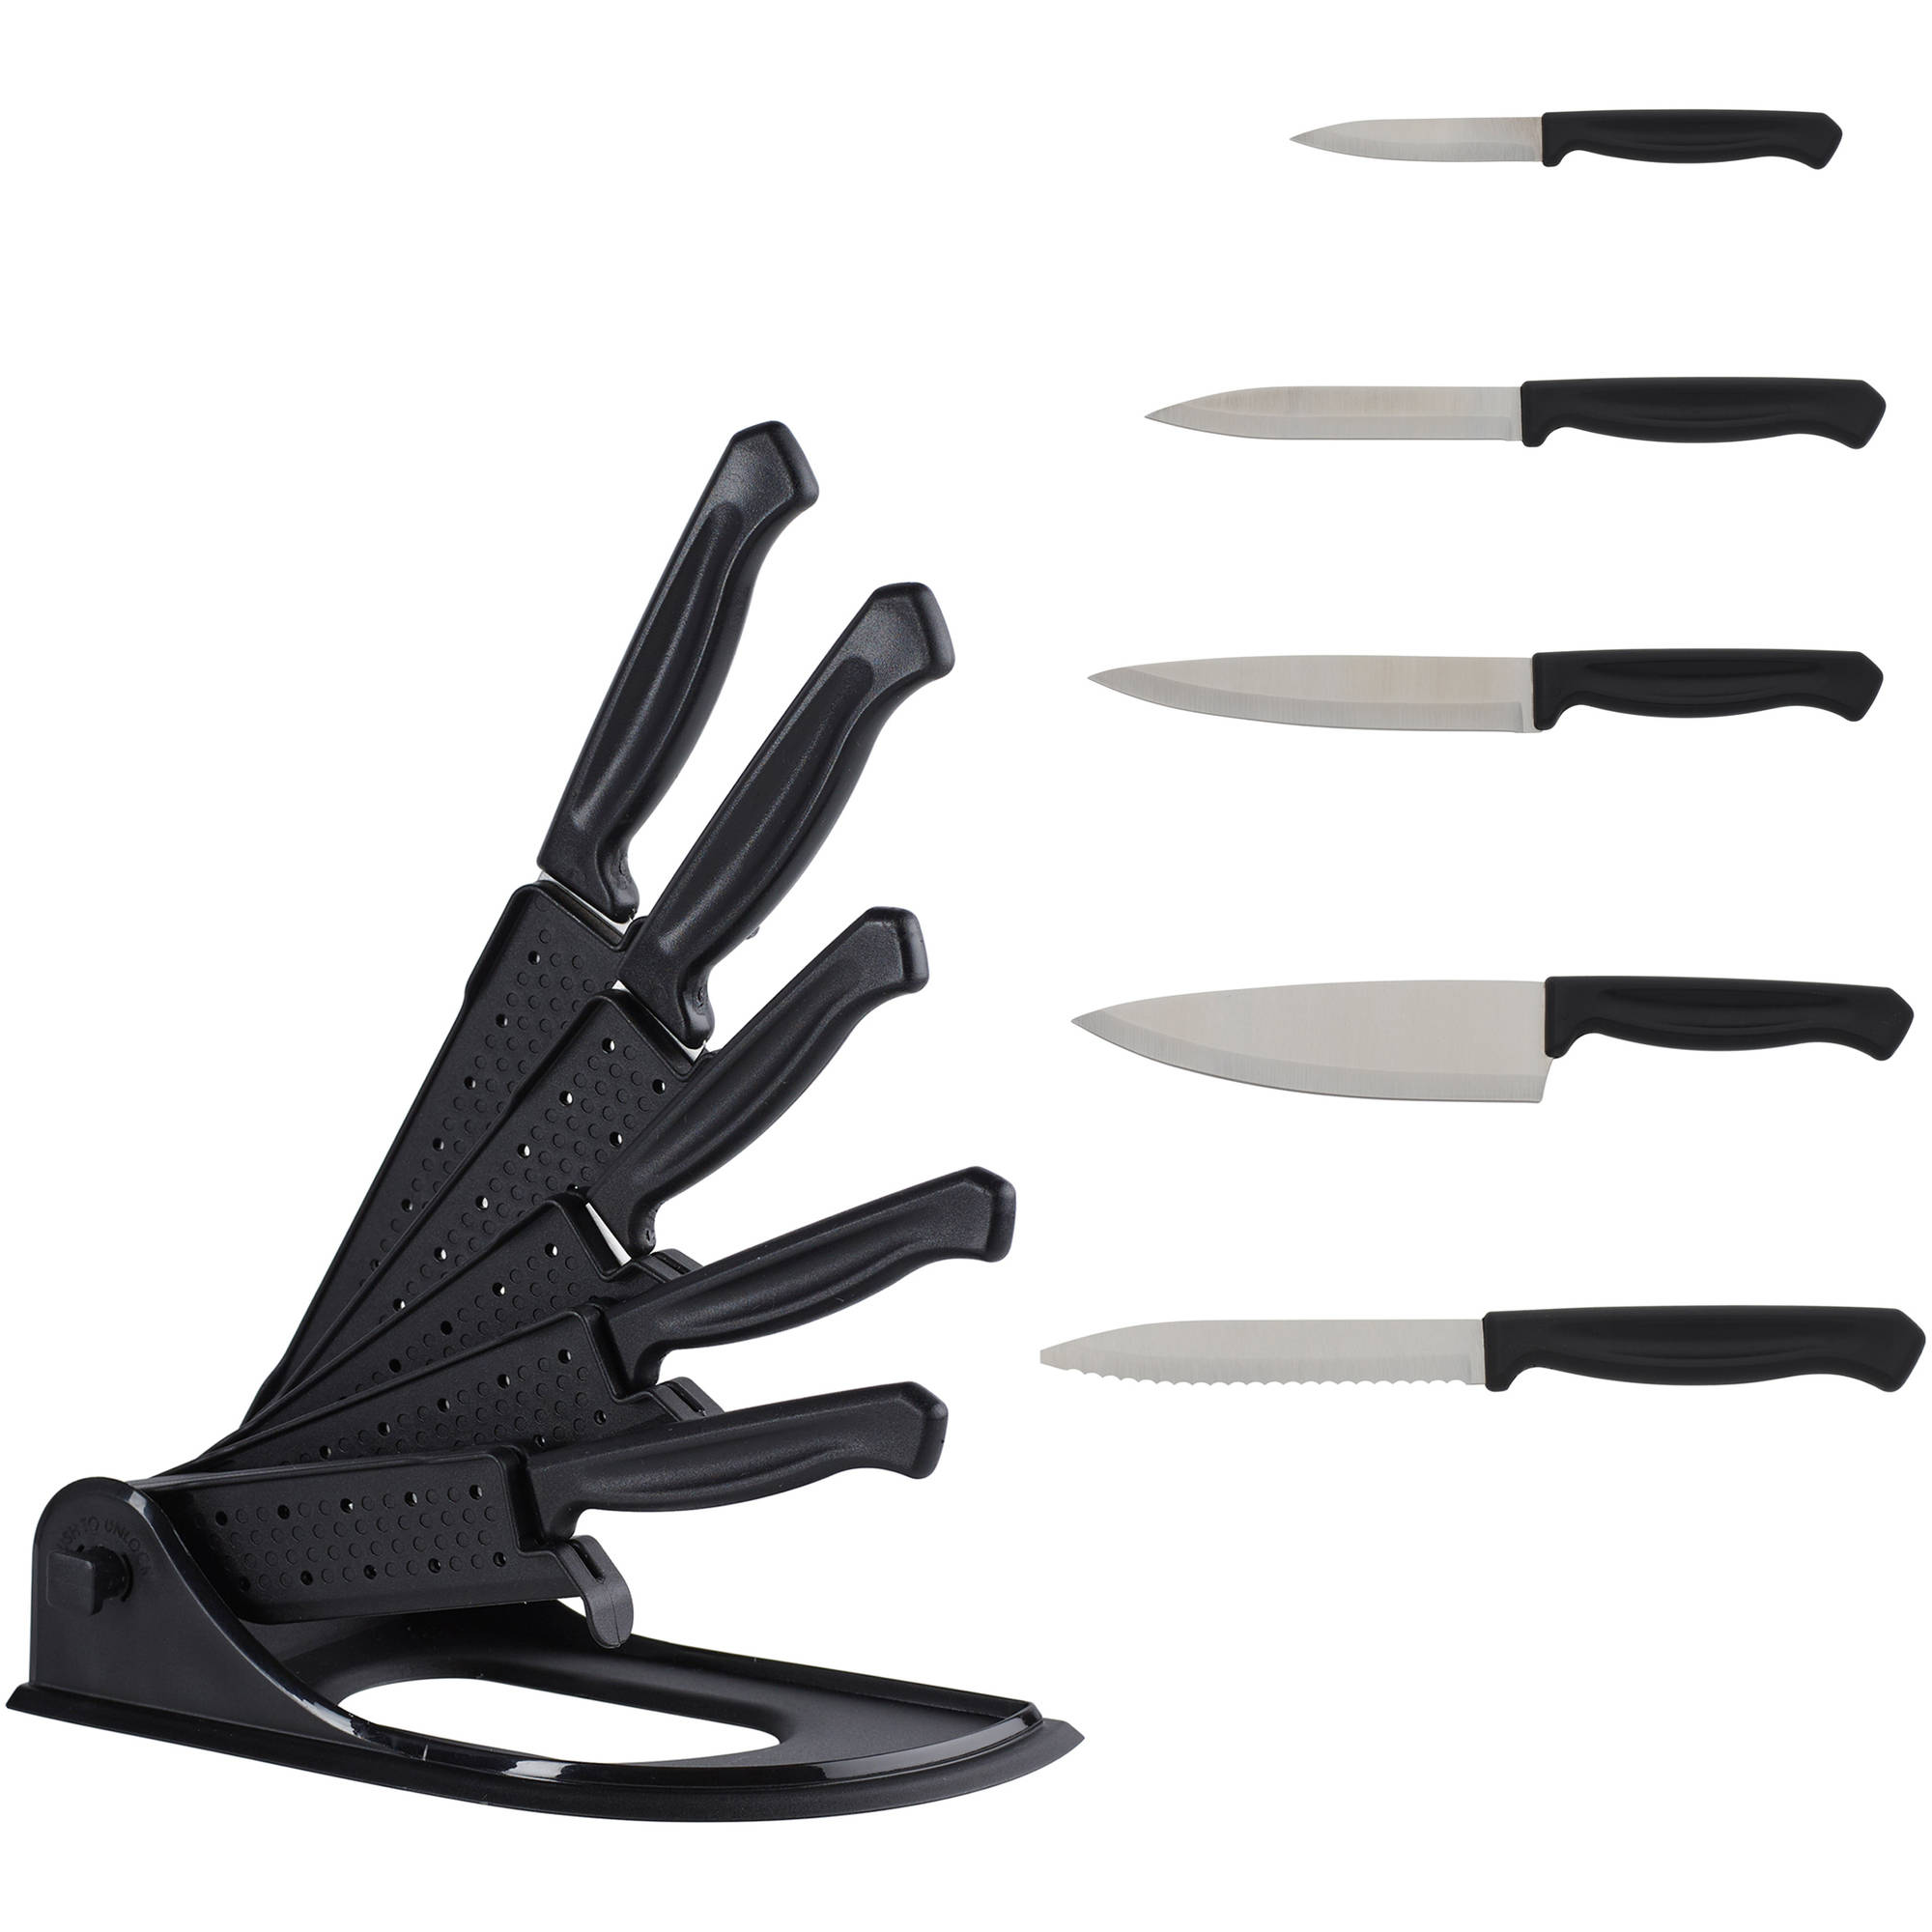 Mainstays 6 Piece Easy Storage Foldable Sheath Block Knife Set